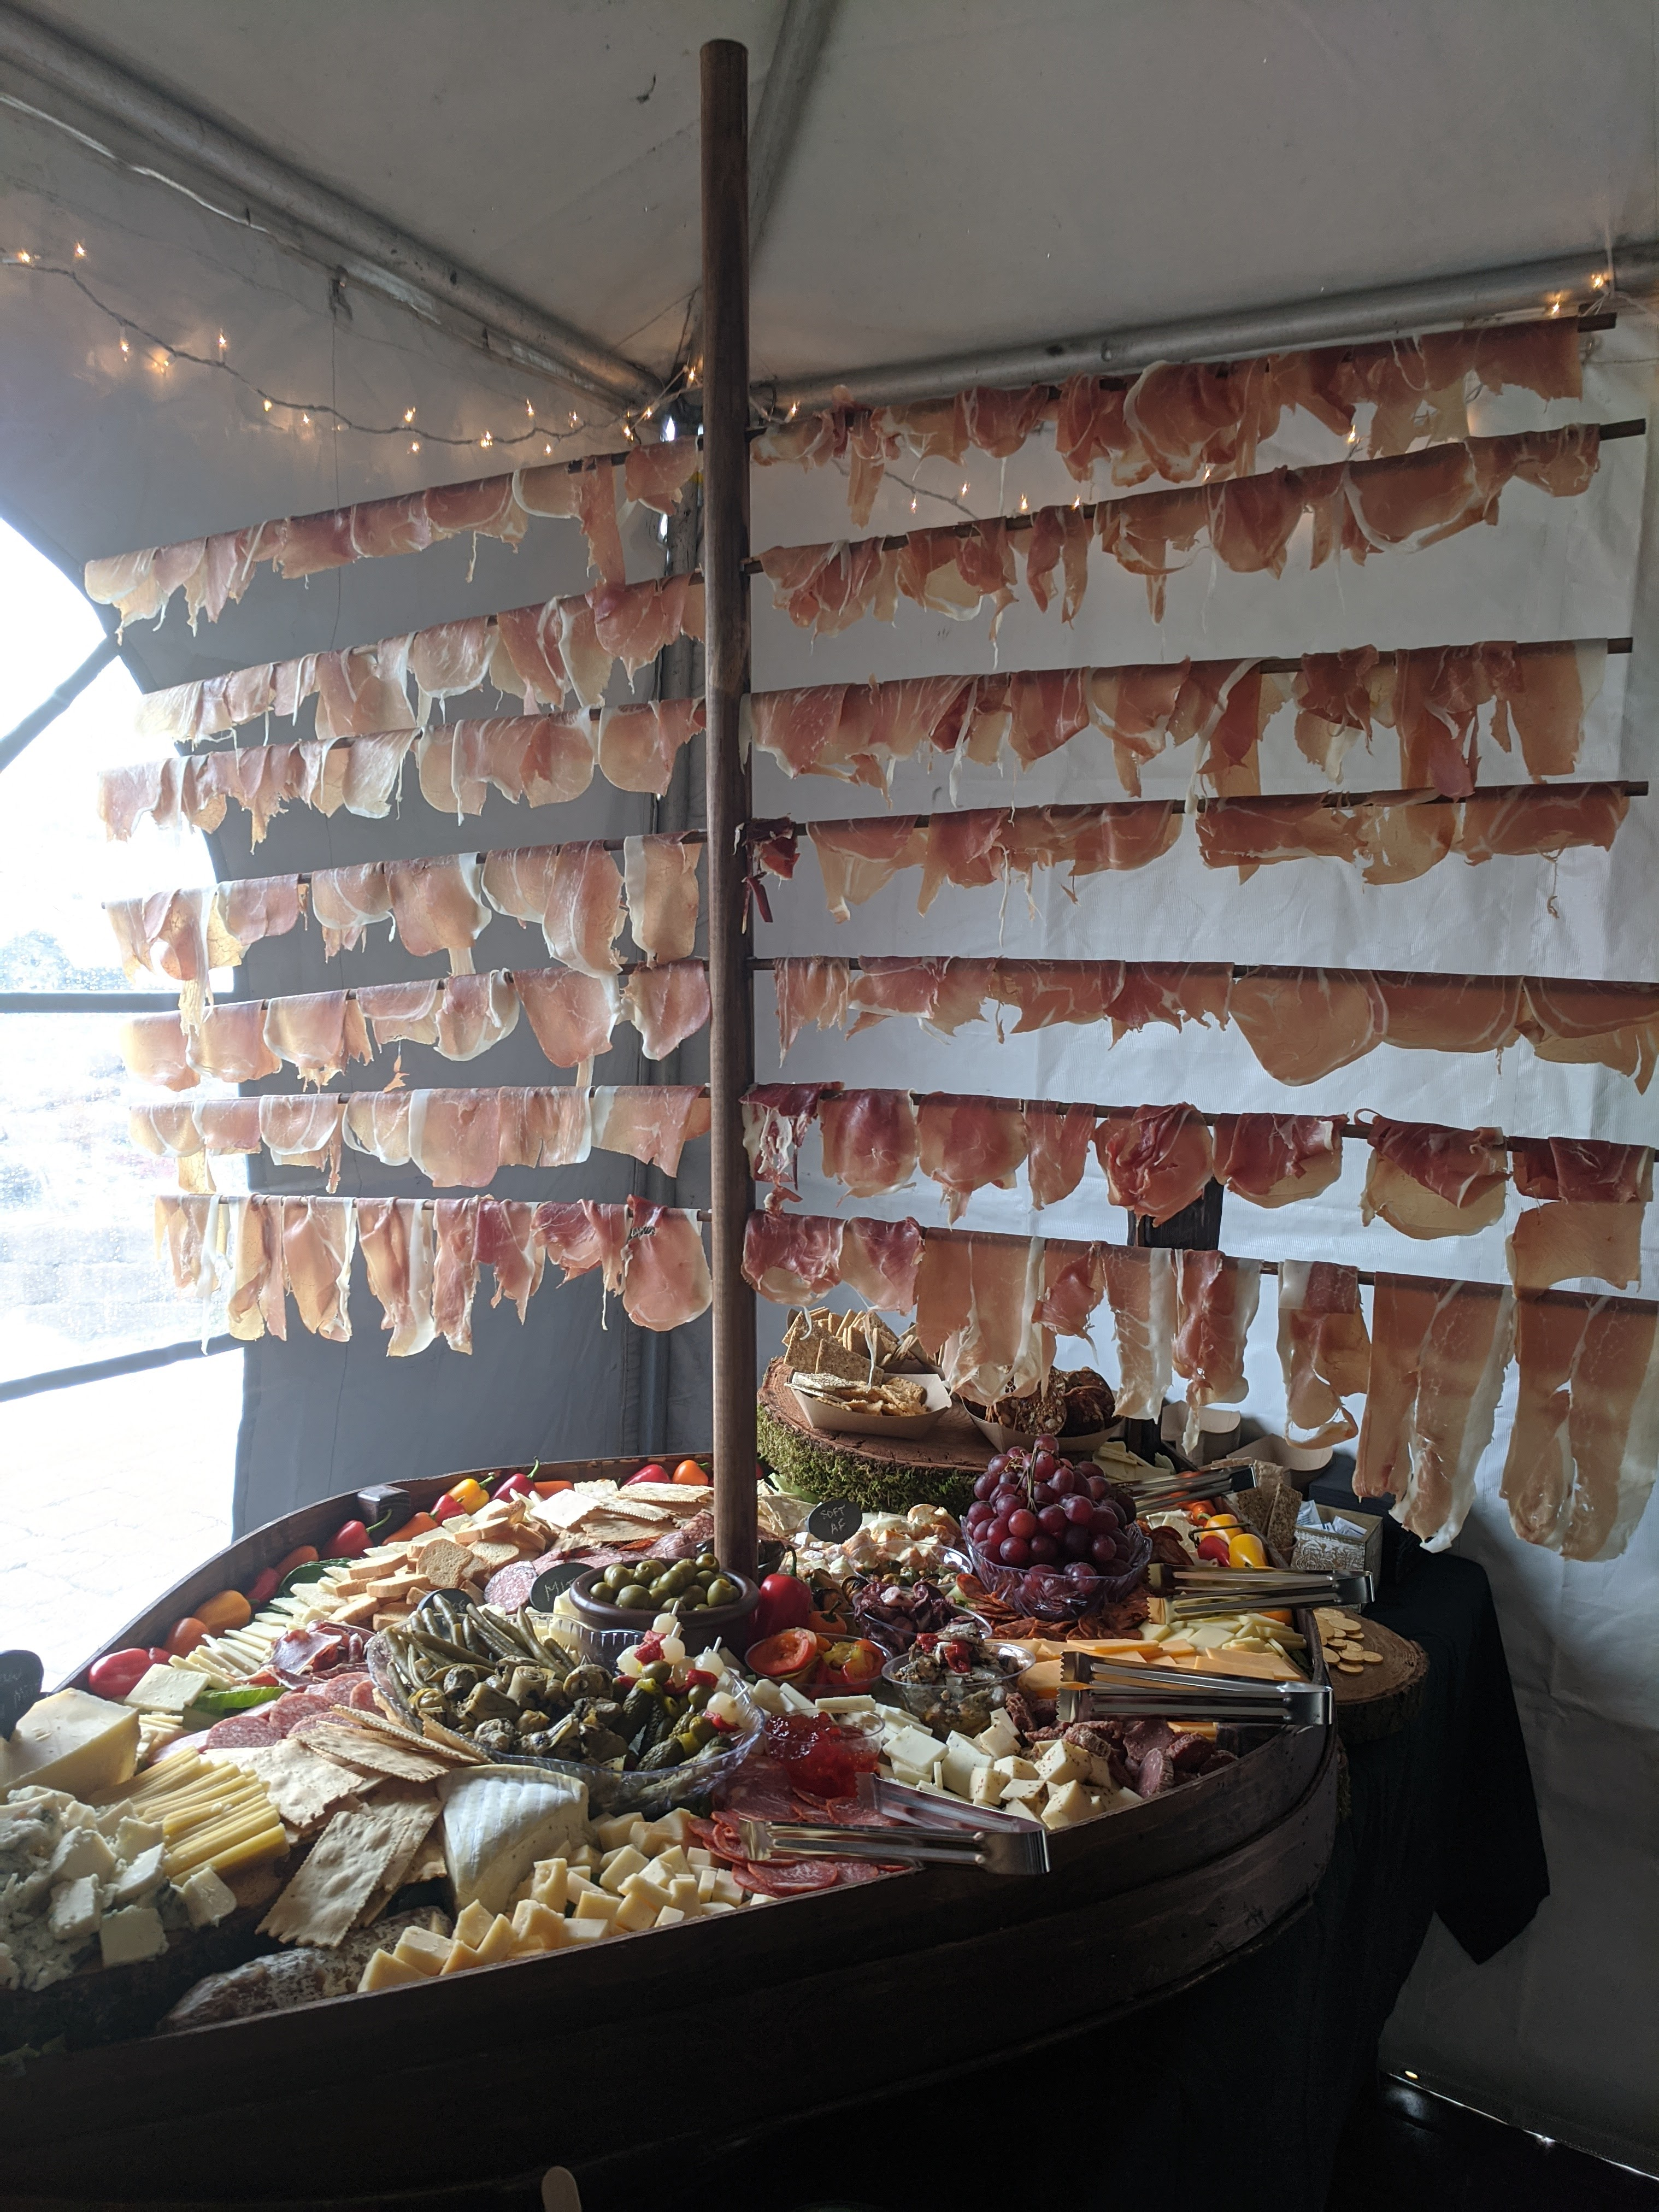 A replica viking longboat loaded up in charcuterie. From the 4-foot tall mast hangs shaved prosciutto. The base of the boat has cured meats, pickled vegetables, and various cheeses.